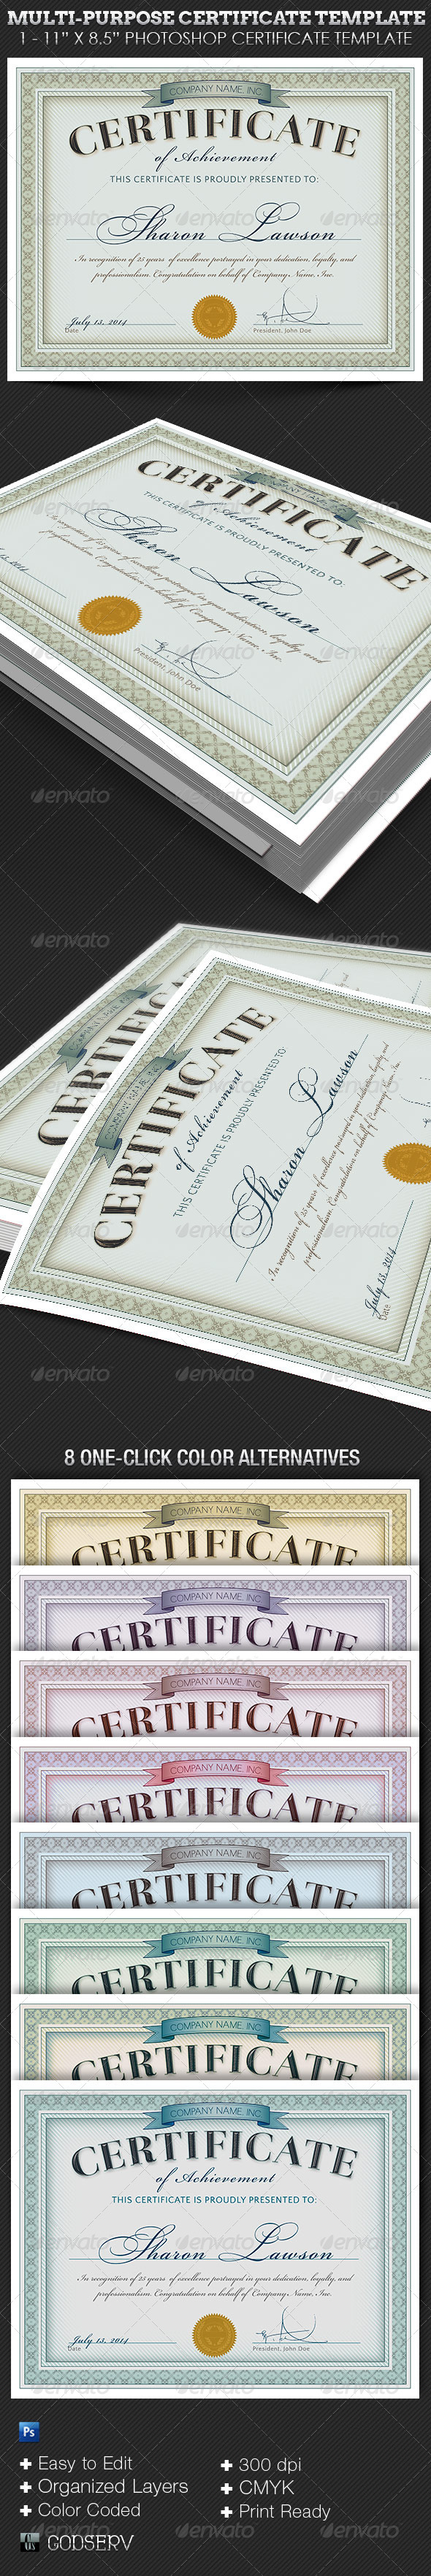 Multipurpose Certificate Template - Certificates Stationery